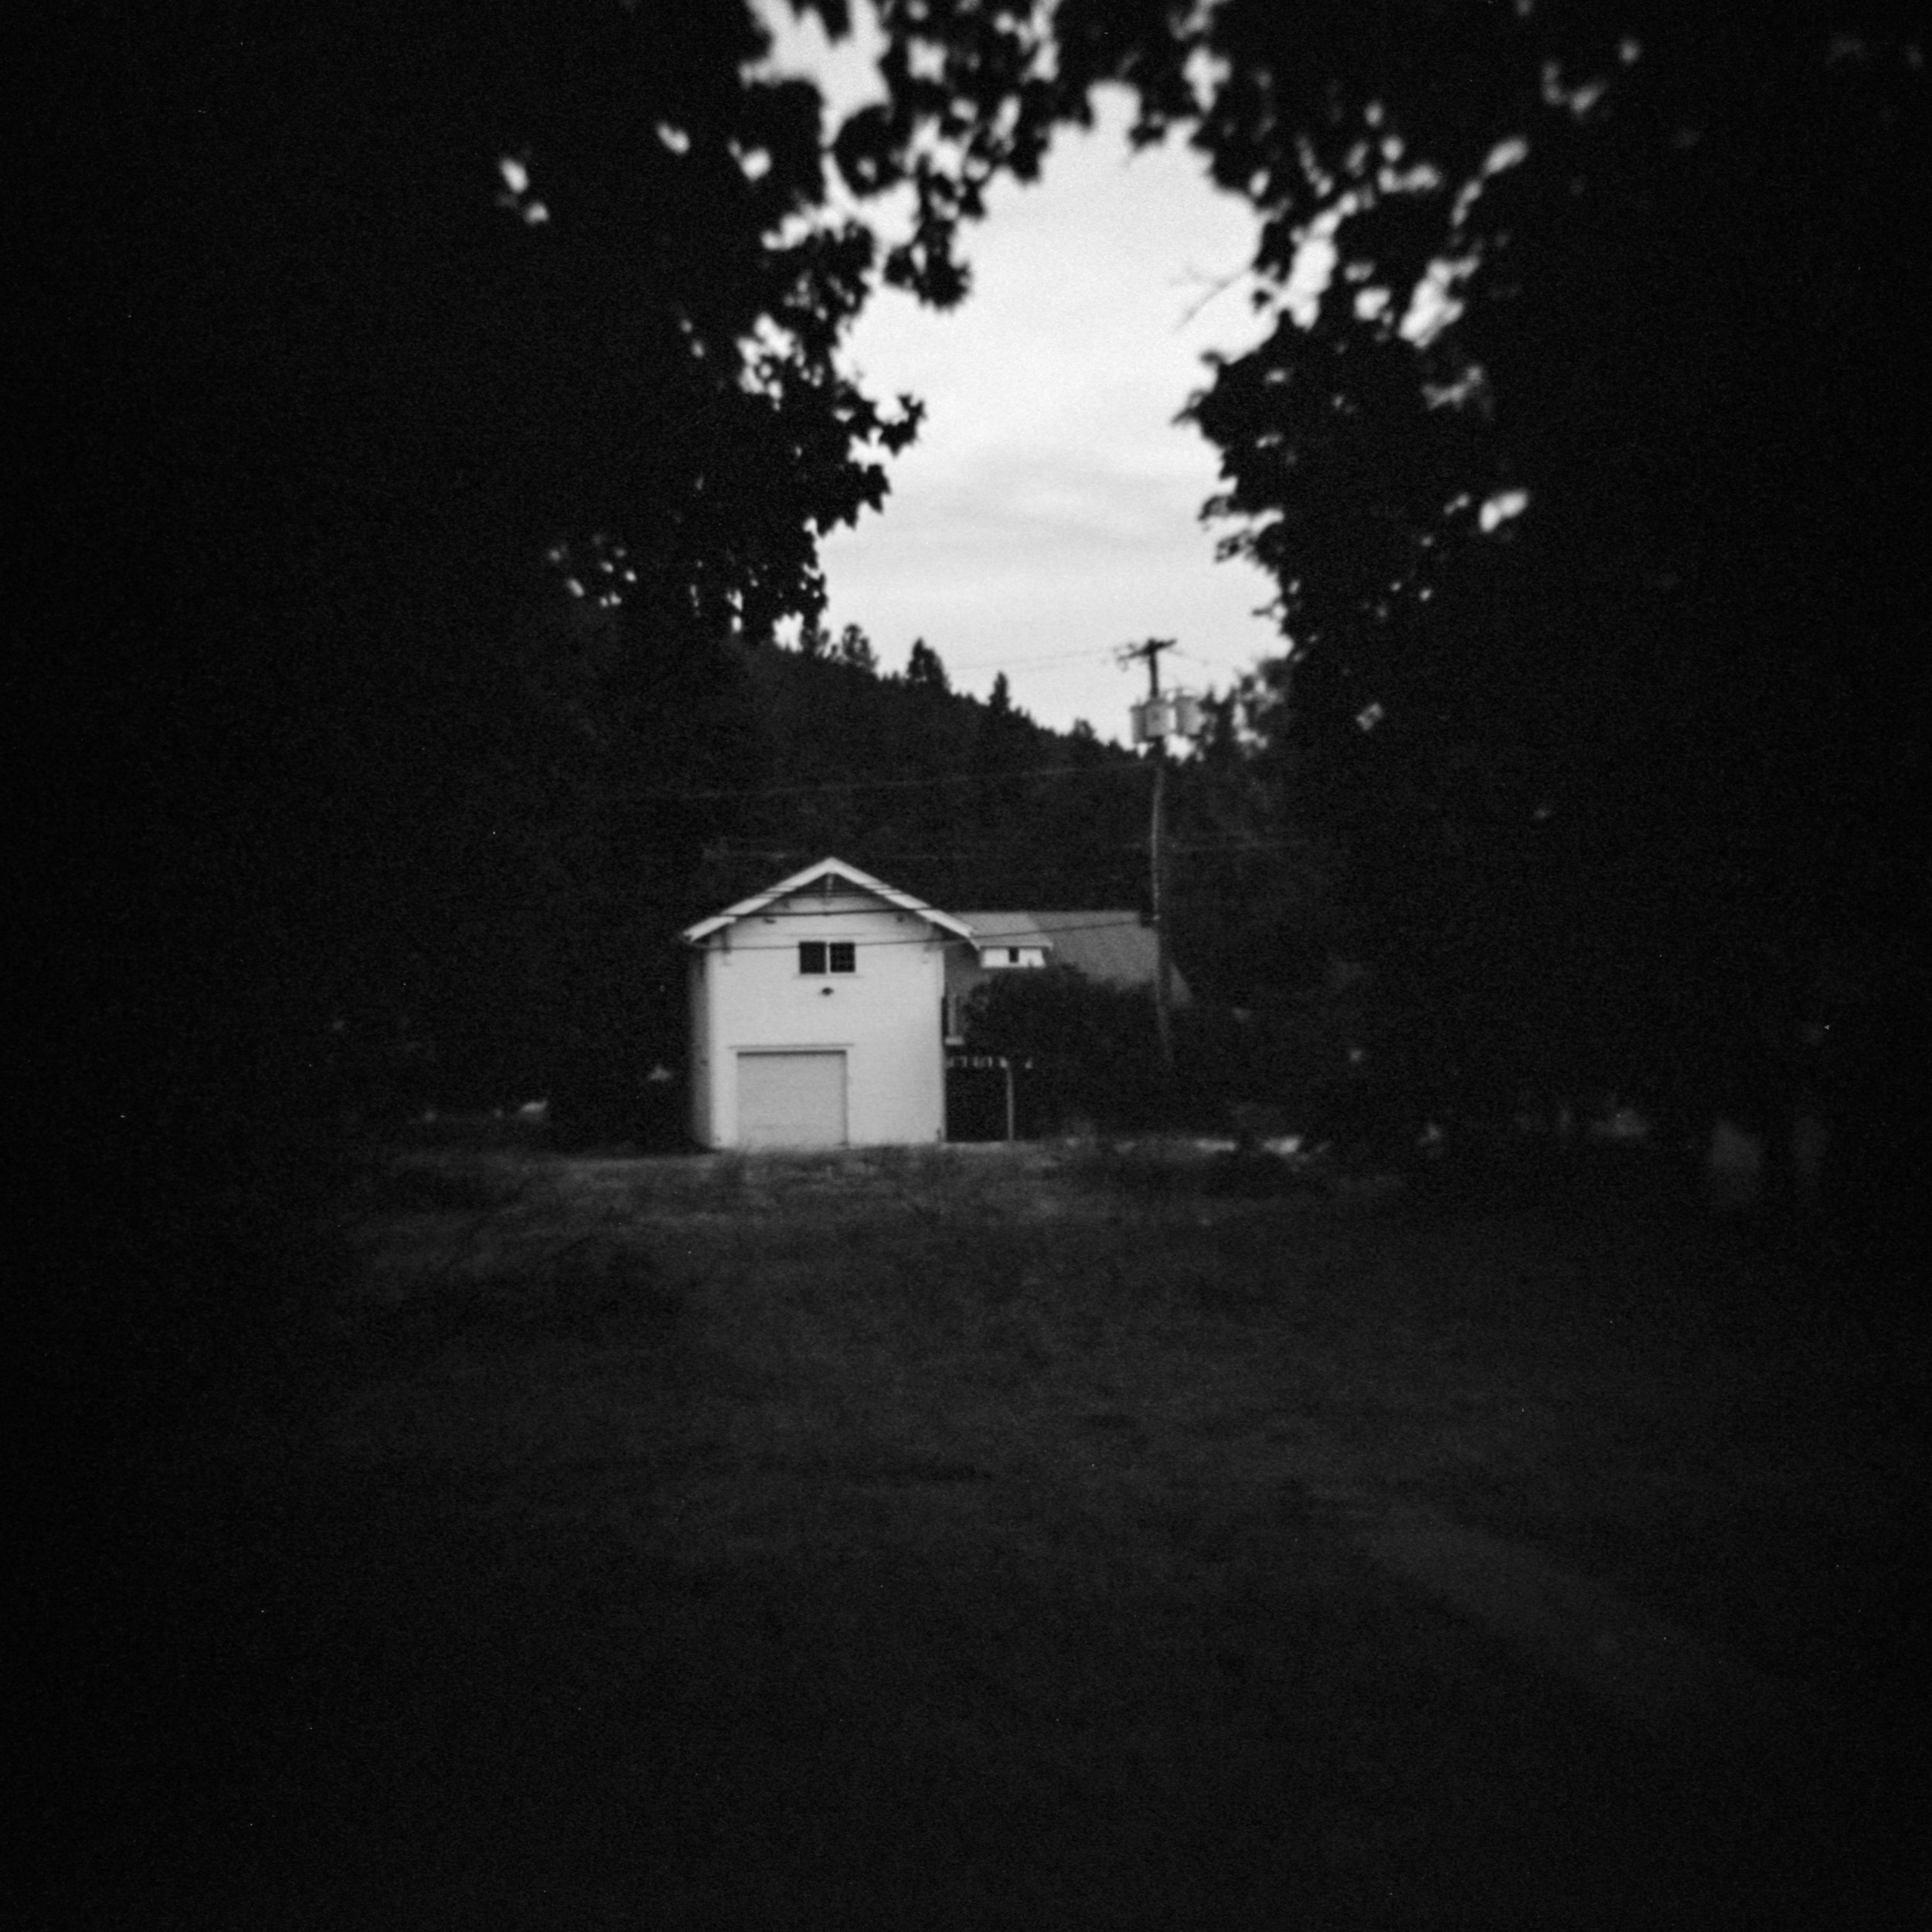 House, Leavenworth, WA, 2017